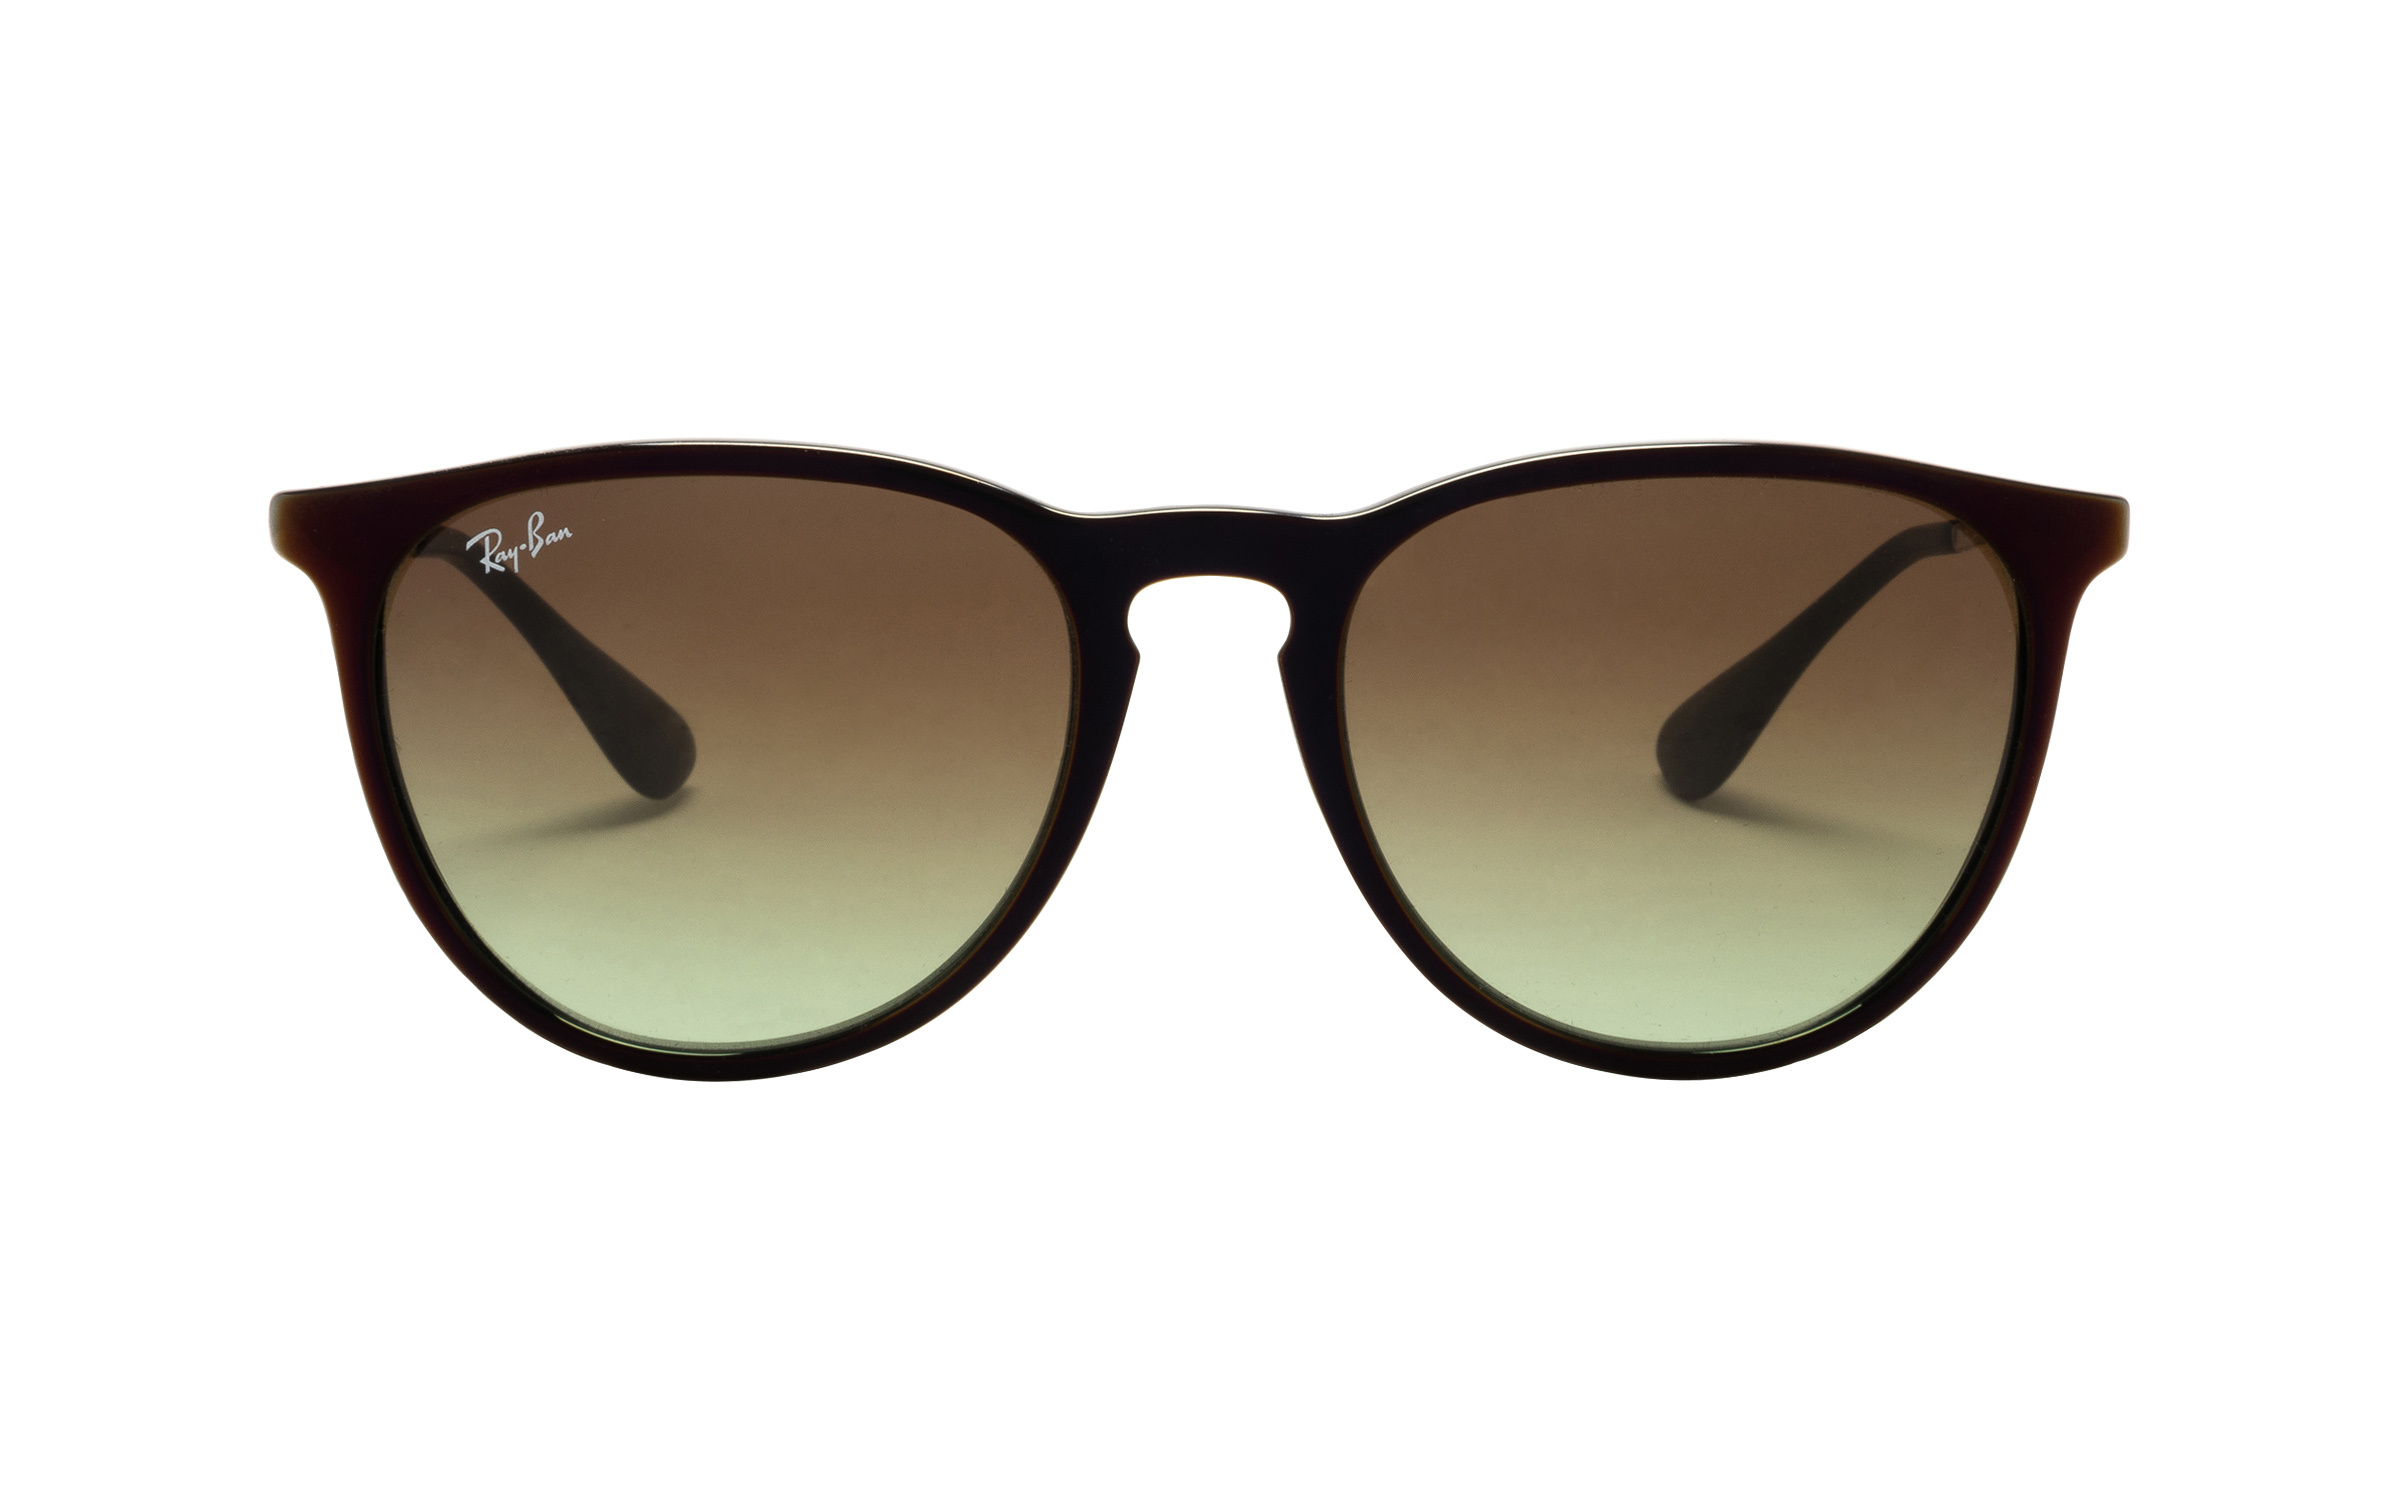 http://www.coastal.com/ - RayBan Ray-Ban RB4171 6316 Sp Red 54 Sunglasses in Black | Acetate/Metal – Online Coastal